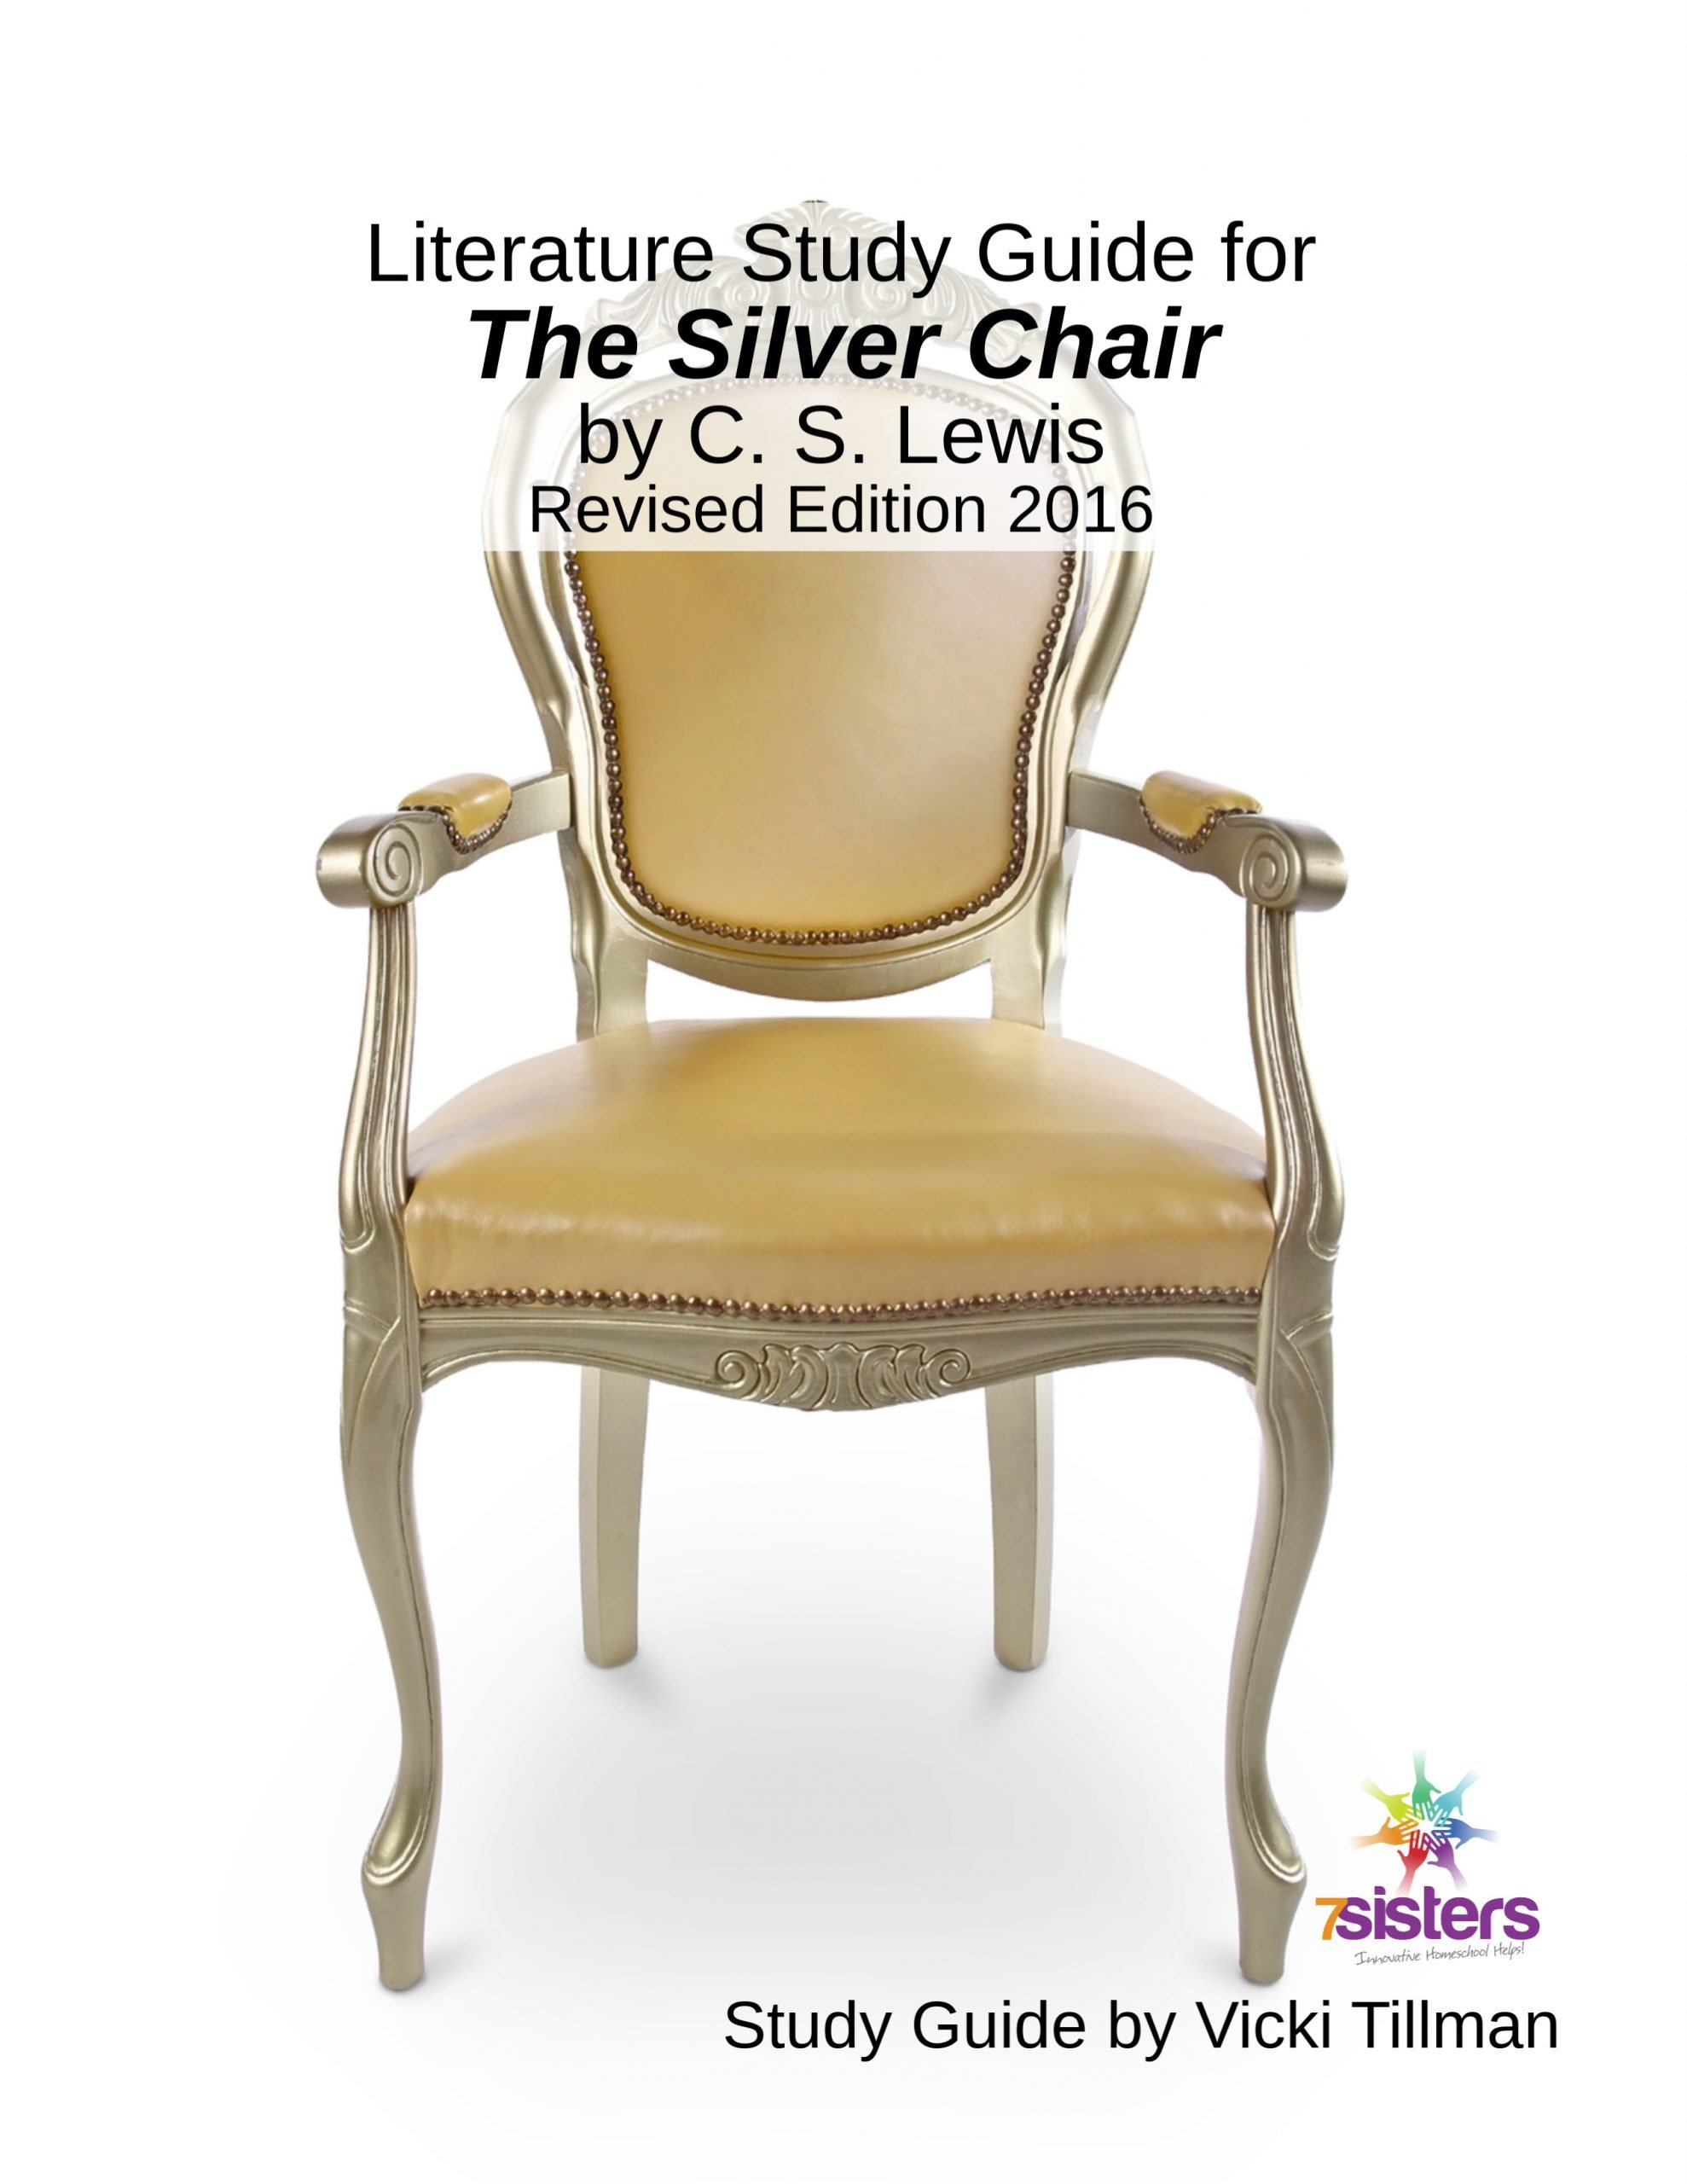 Silver Chair Literature Study Guide